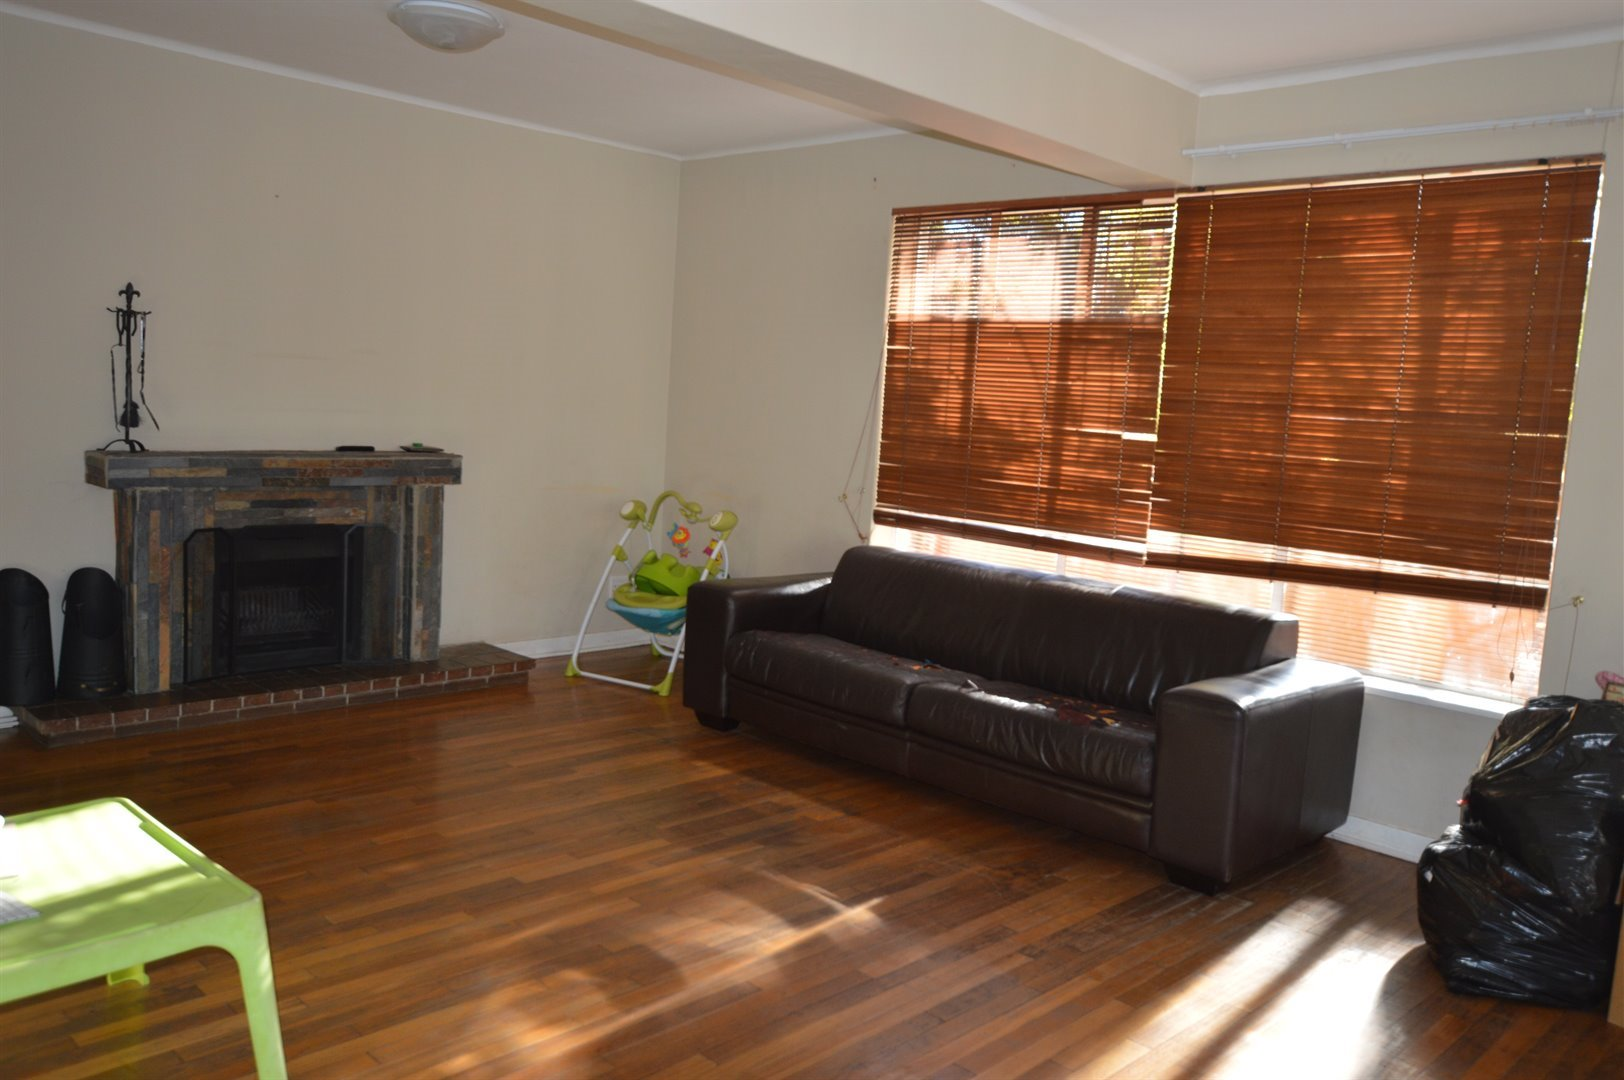 Vanderbijlpark Sw5 property for sale. Ref No: 13501187. Picture no 14